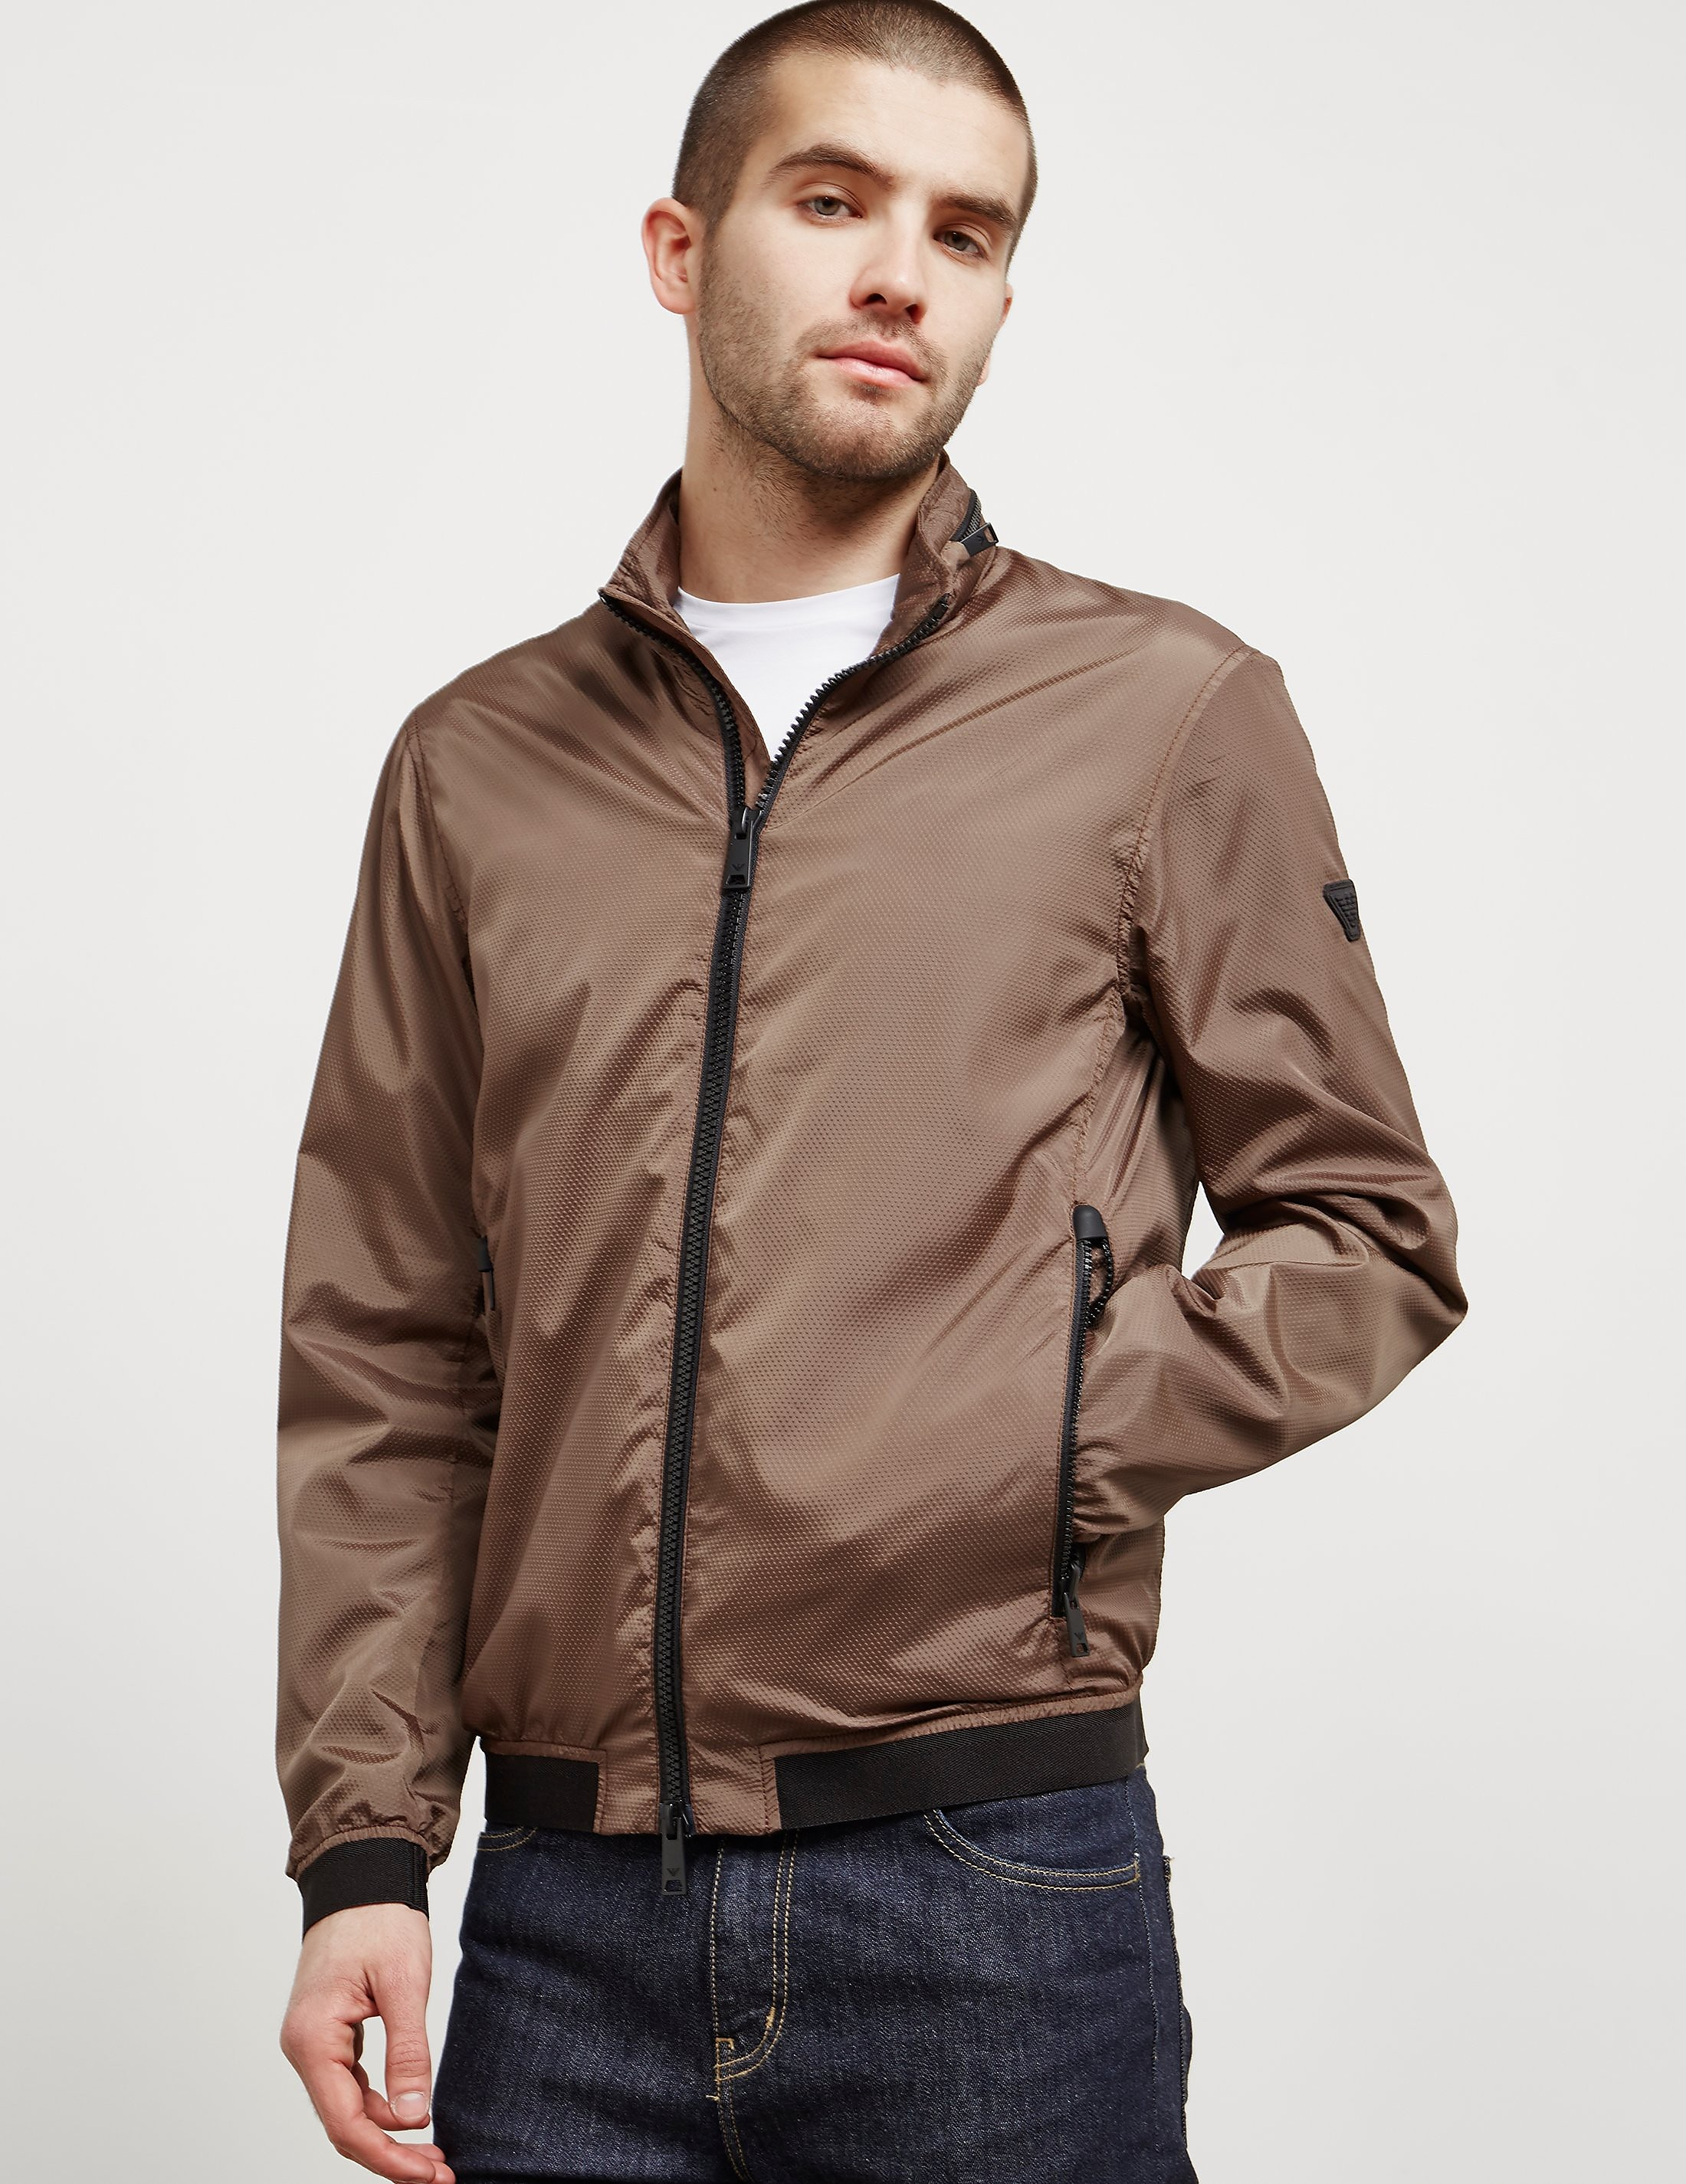 Emporio Armani Perforated Nylon Jacket